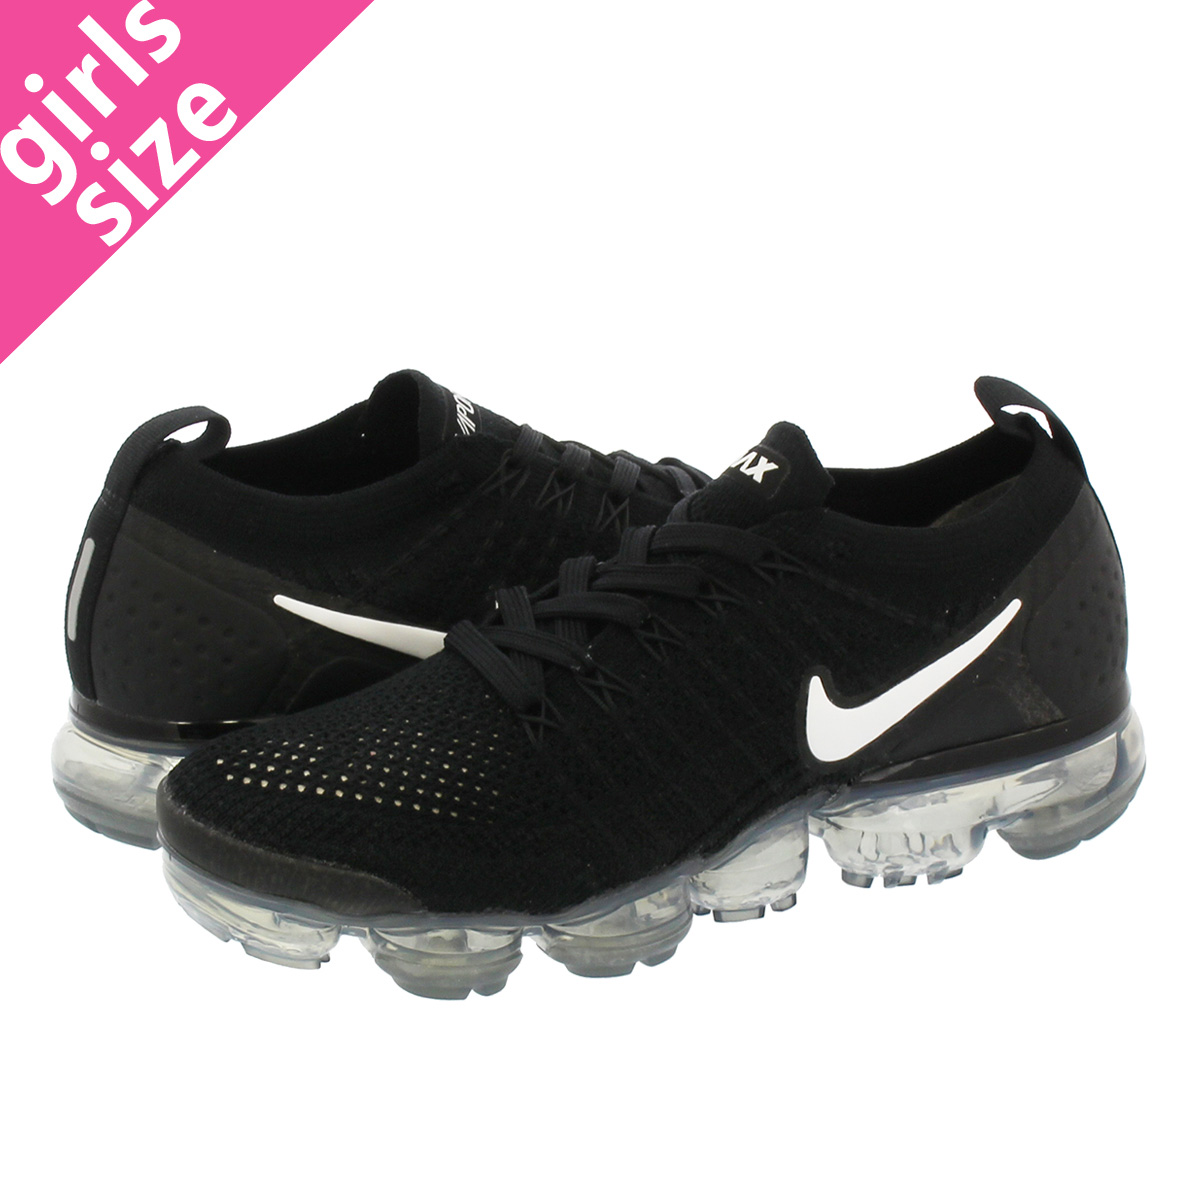 sale retailer 98032 666b7 NIKE WMNS AIR VAPORMAX FLYKNIT 2 Nike women vapor max fried food knit  BLACK/WHITE/DARK GREY/METALLIC SILVER 942,843-001